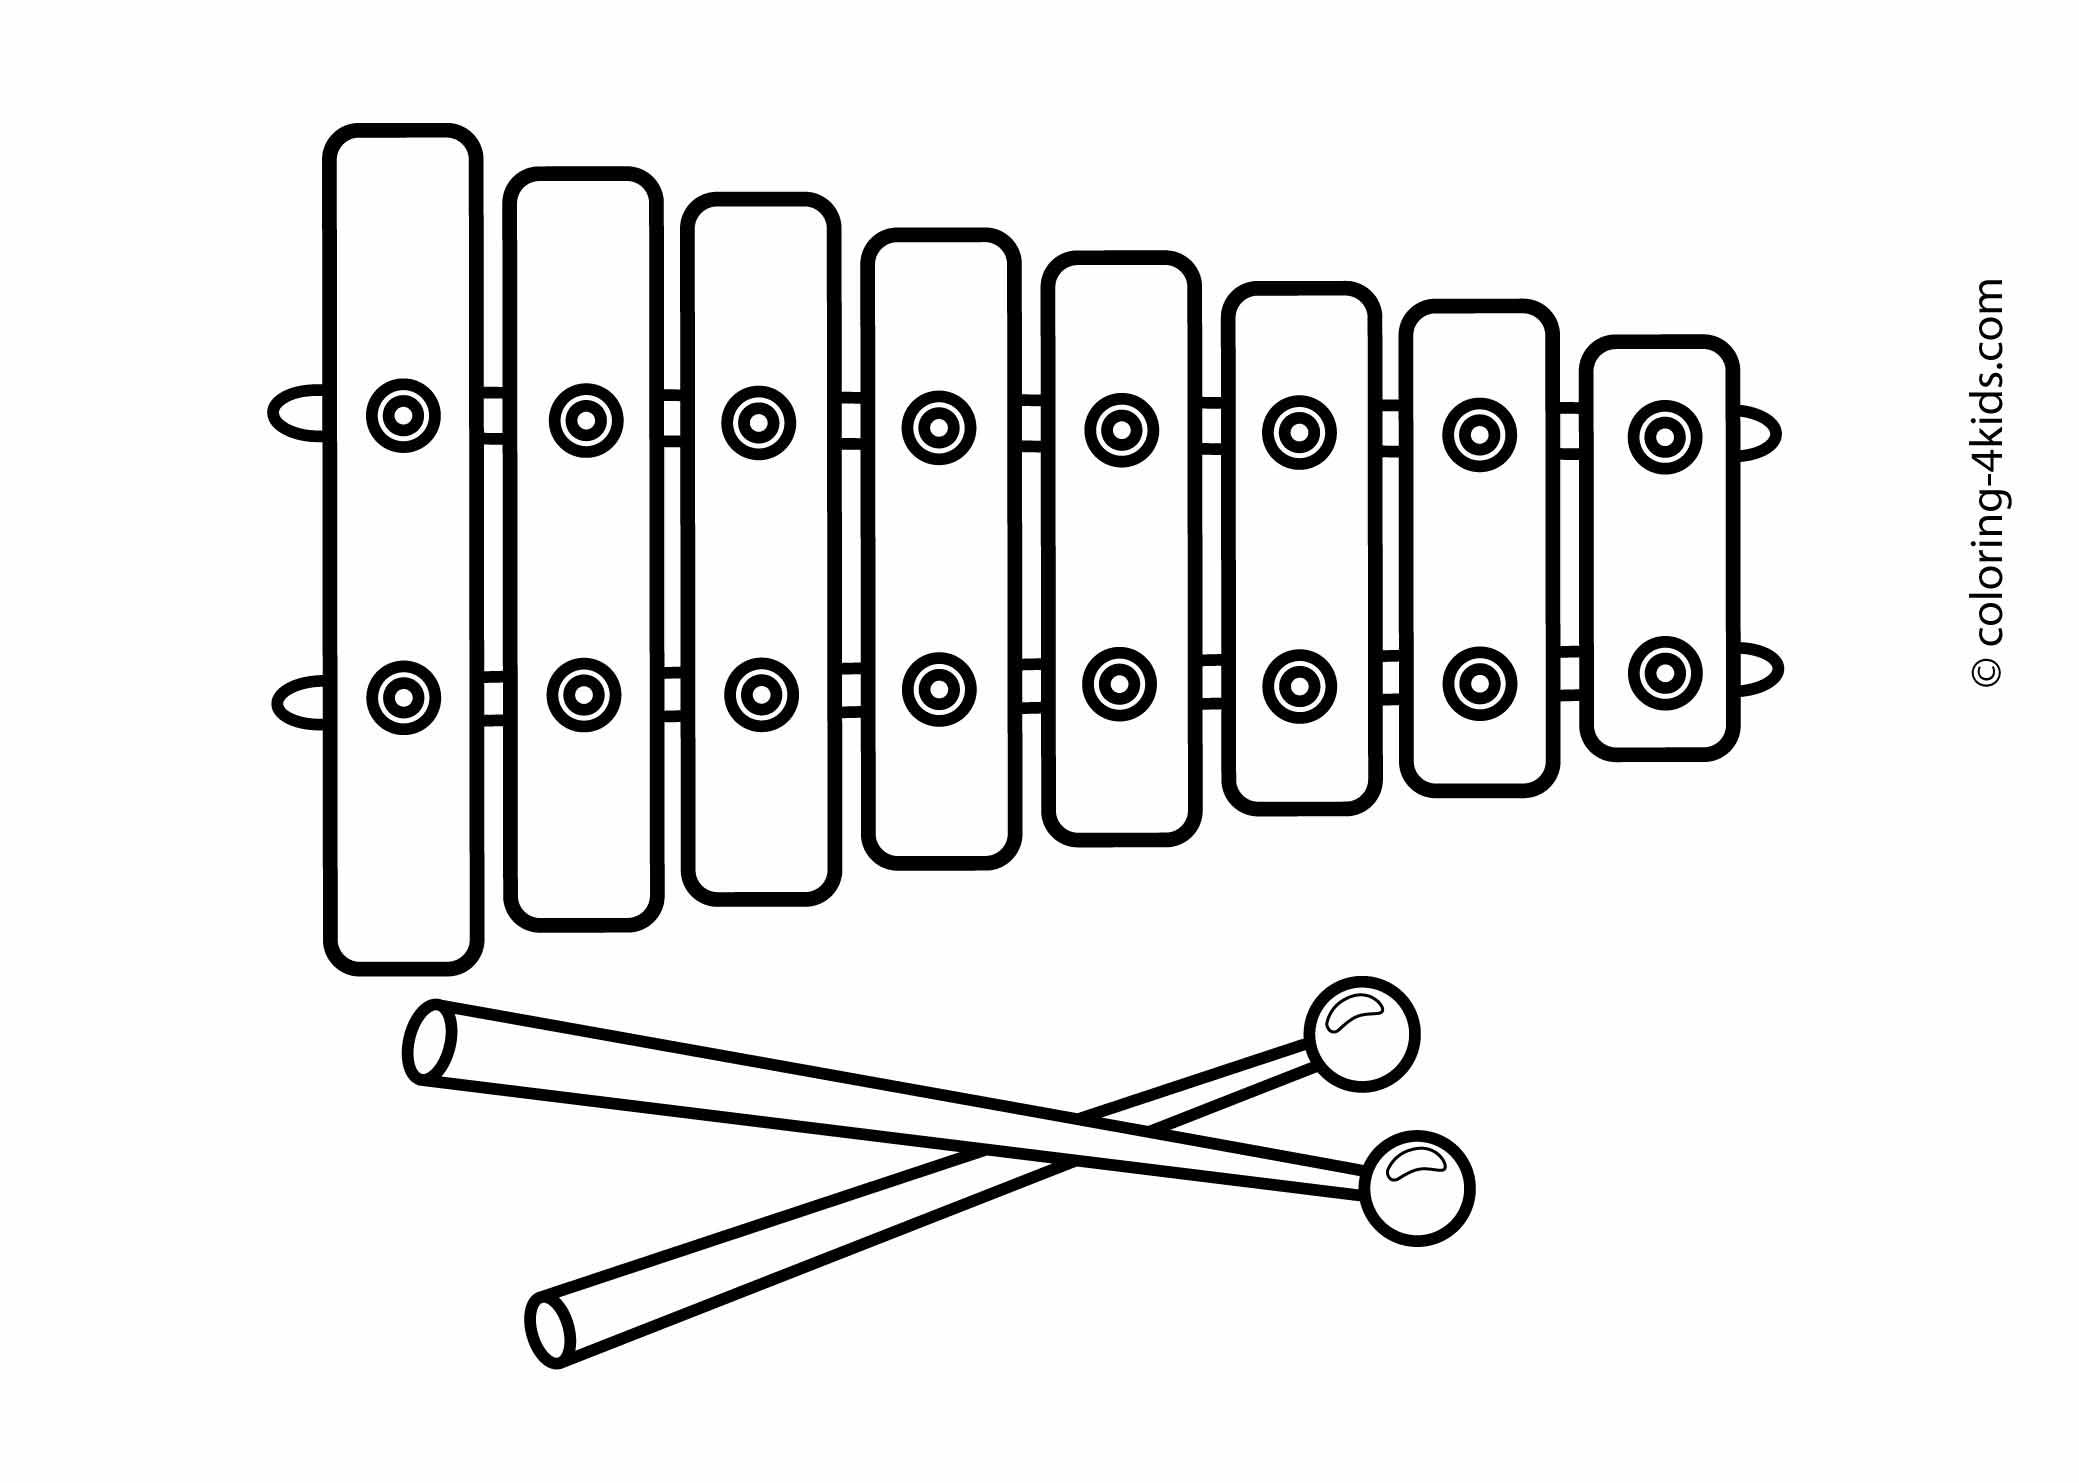 Xylophone Musical Instruments Coloring Pages For Kids Printable Kids Musical Instruments Music Coloring Music Drawings